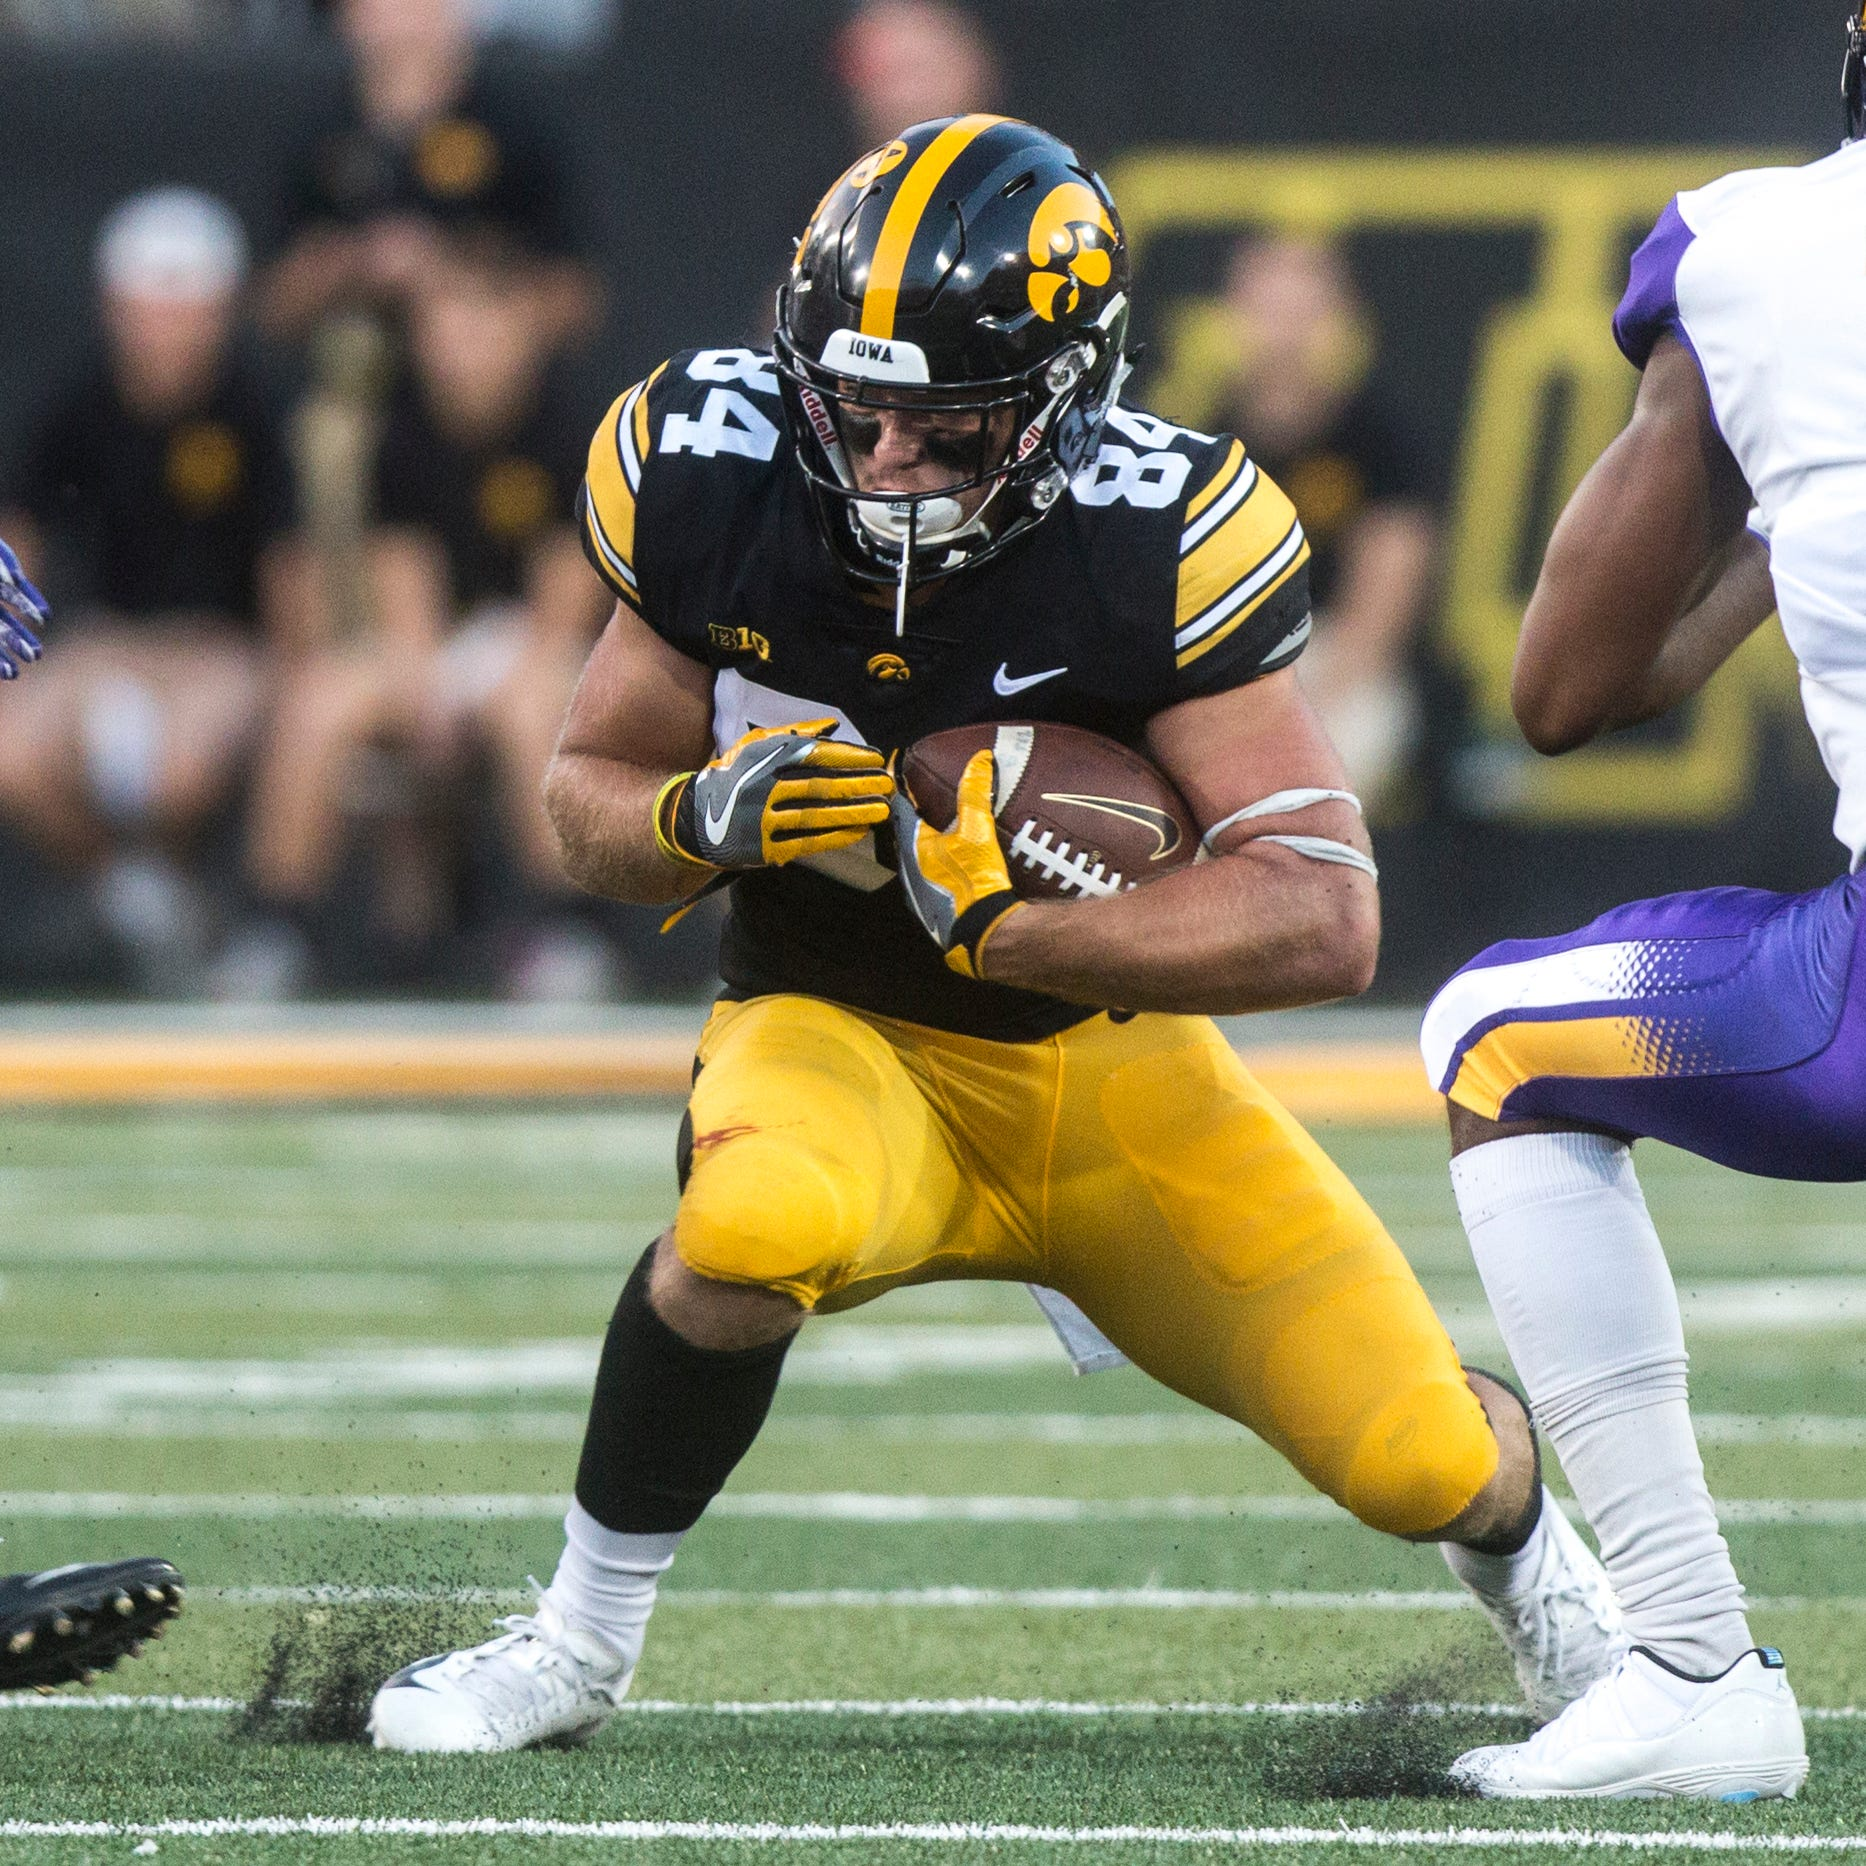 When it's time to keep a drive alive, Hawkeyes turn to Nick Easley